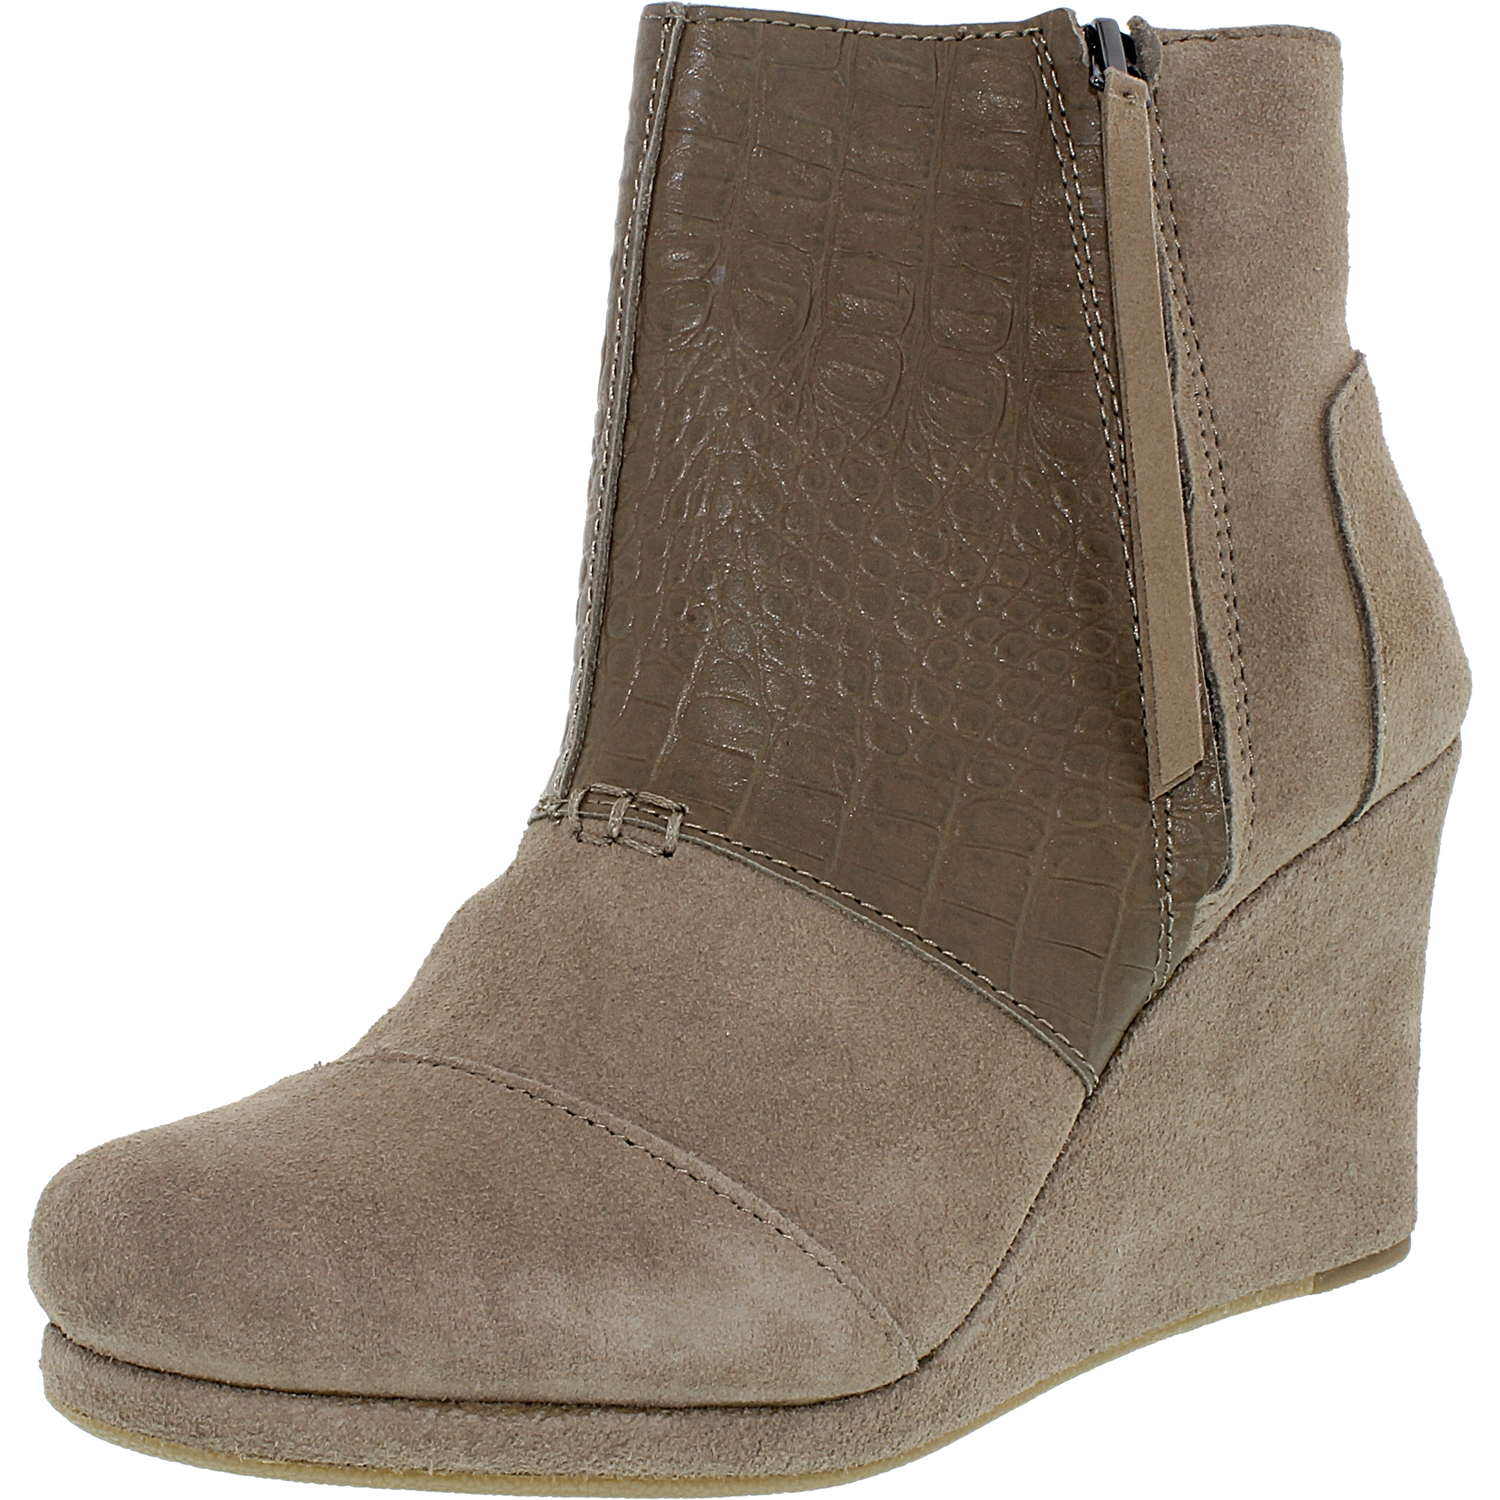 Toms Women\'s Desert Wedge High Taupe Suede Croc Emboss Ankle-High ...